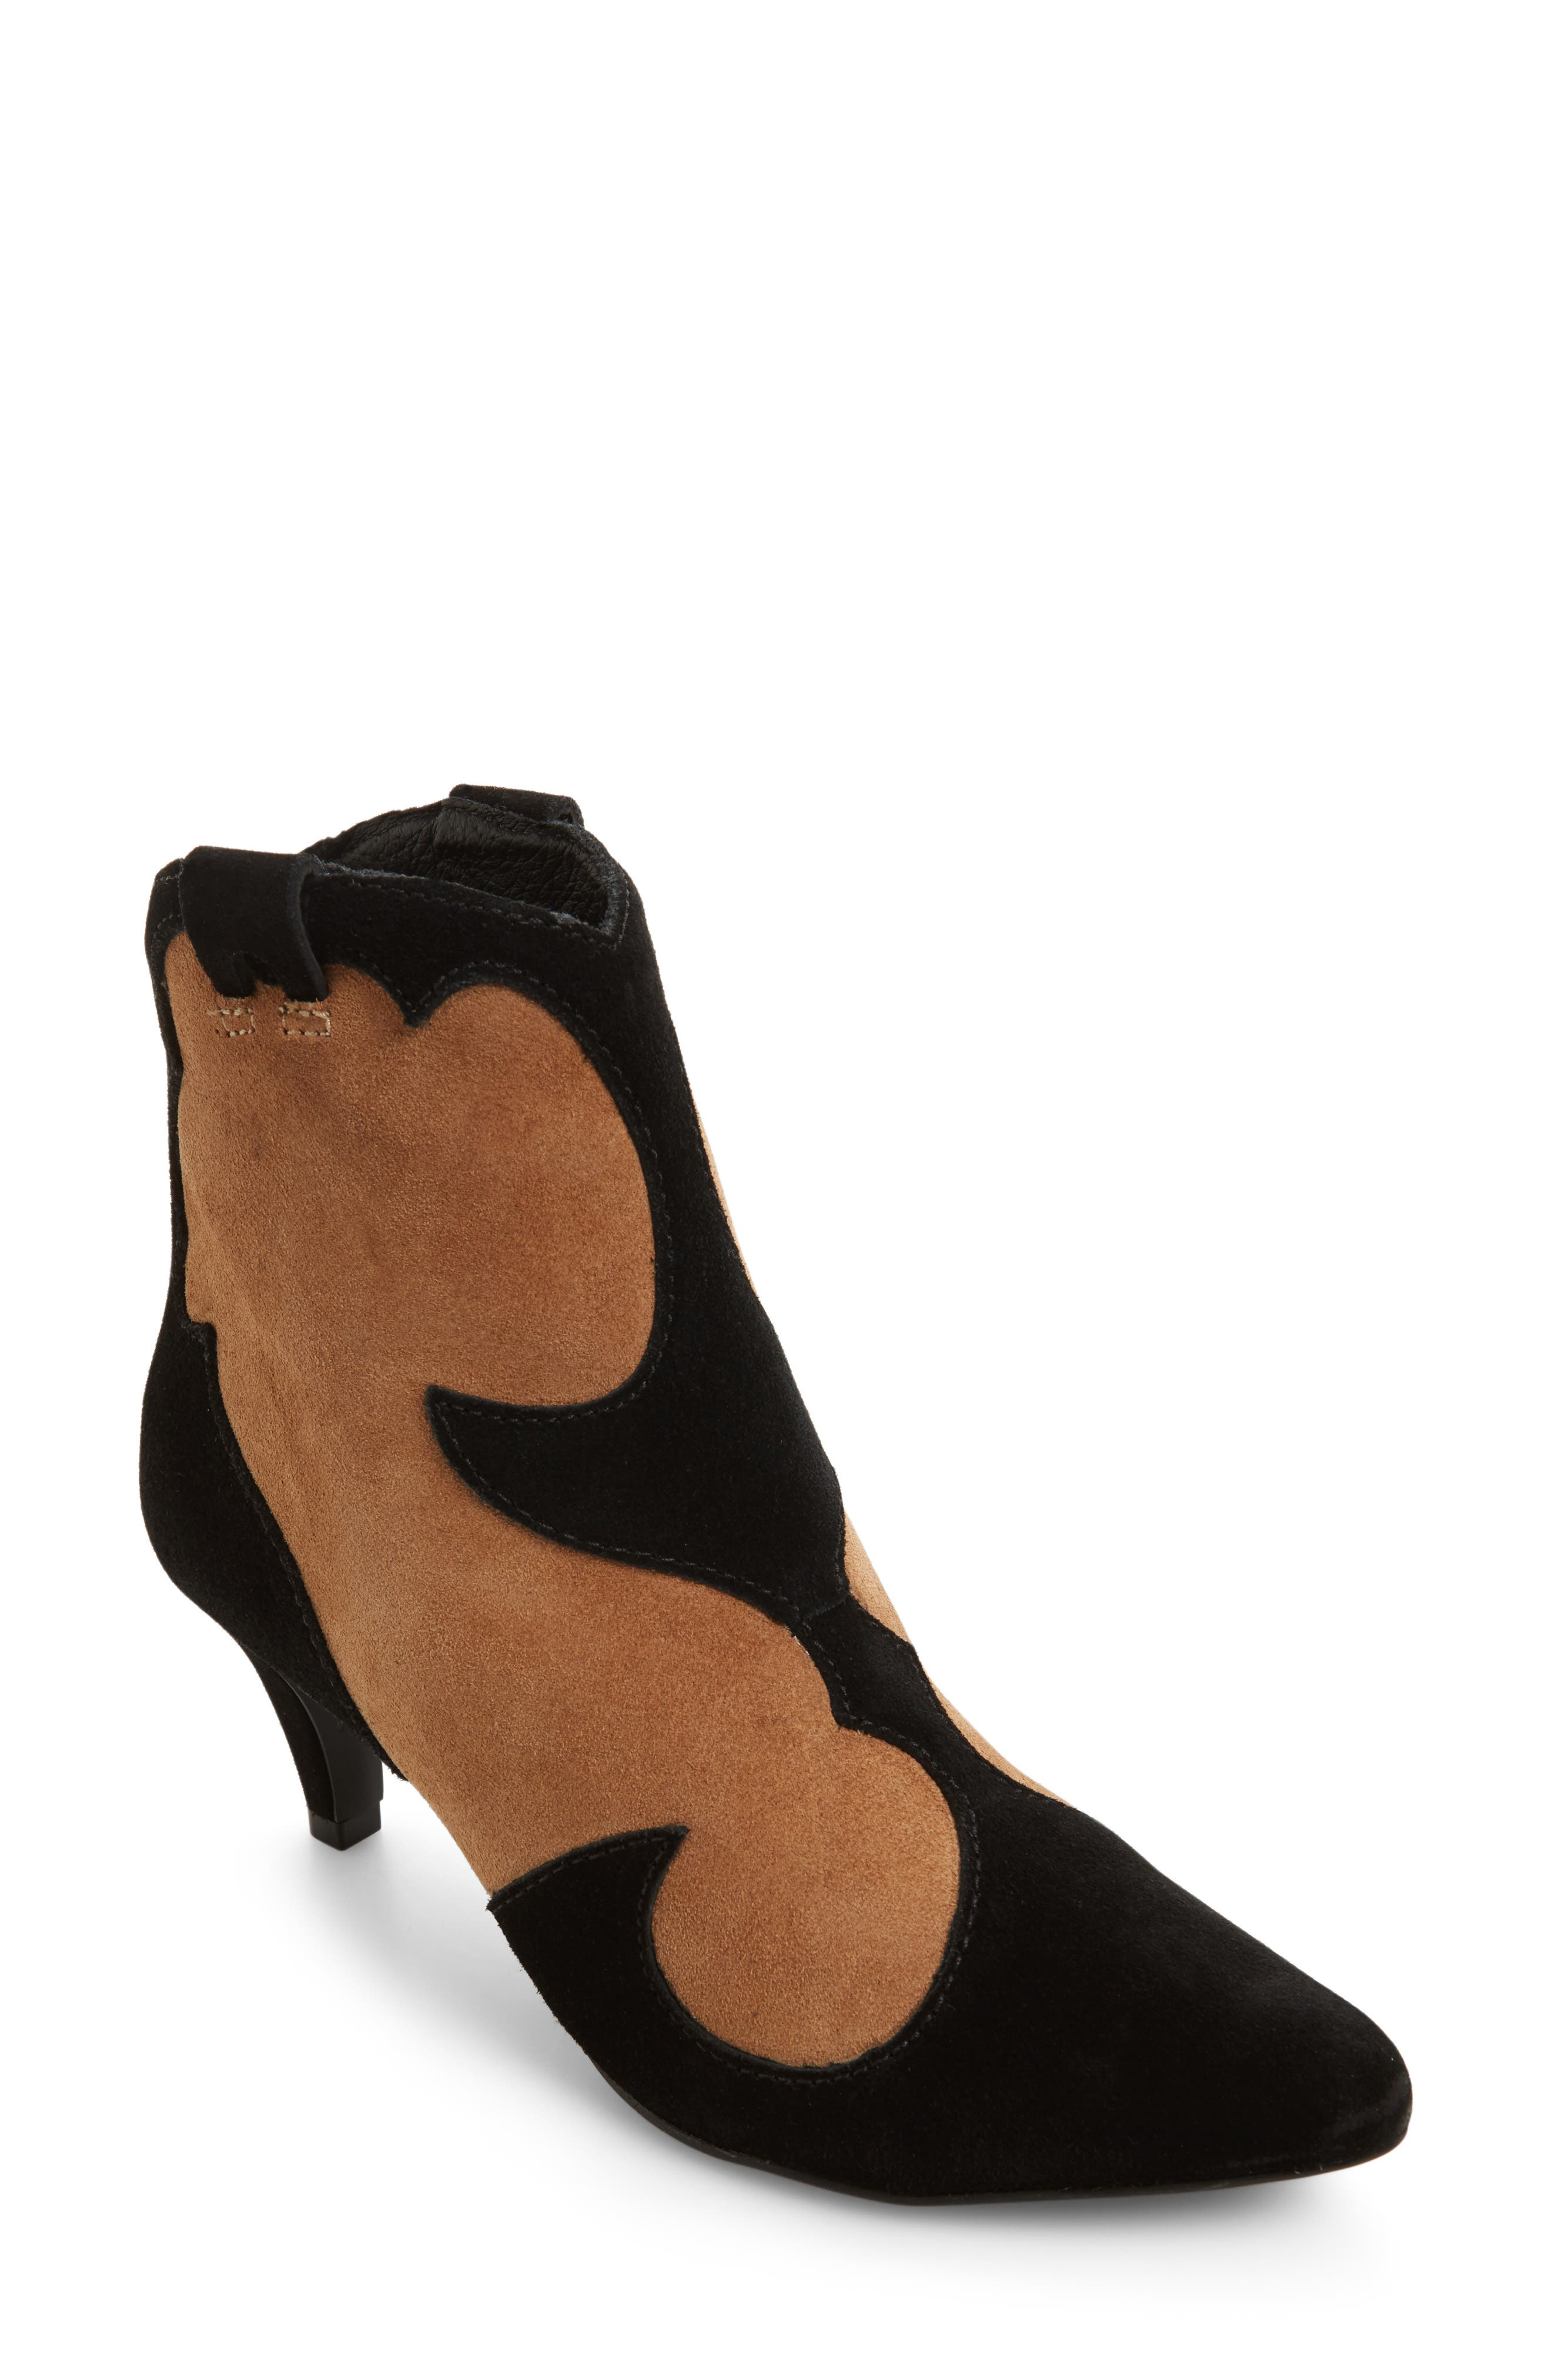 Majesty Two-Tone Bootie,                             Main thumbnail 1, color,